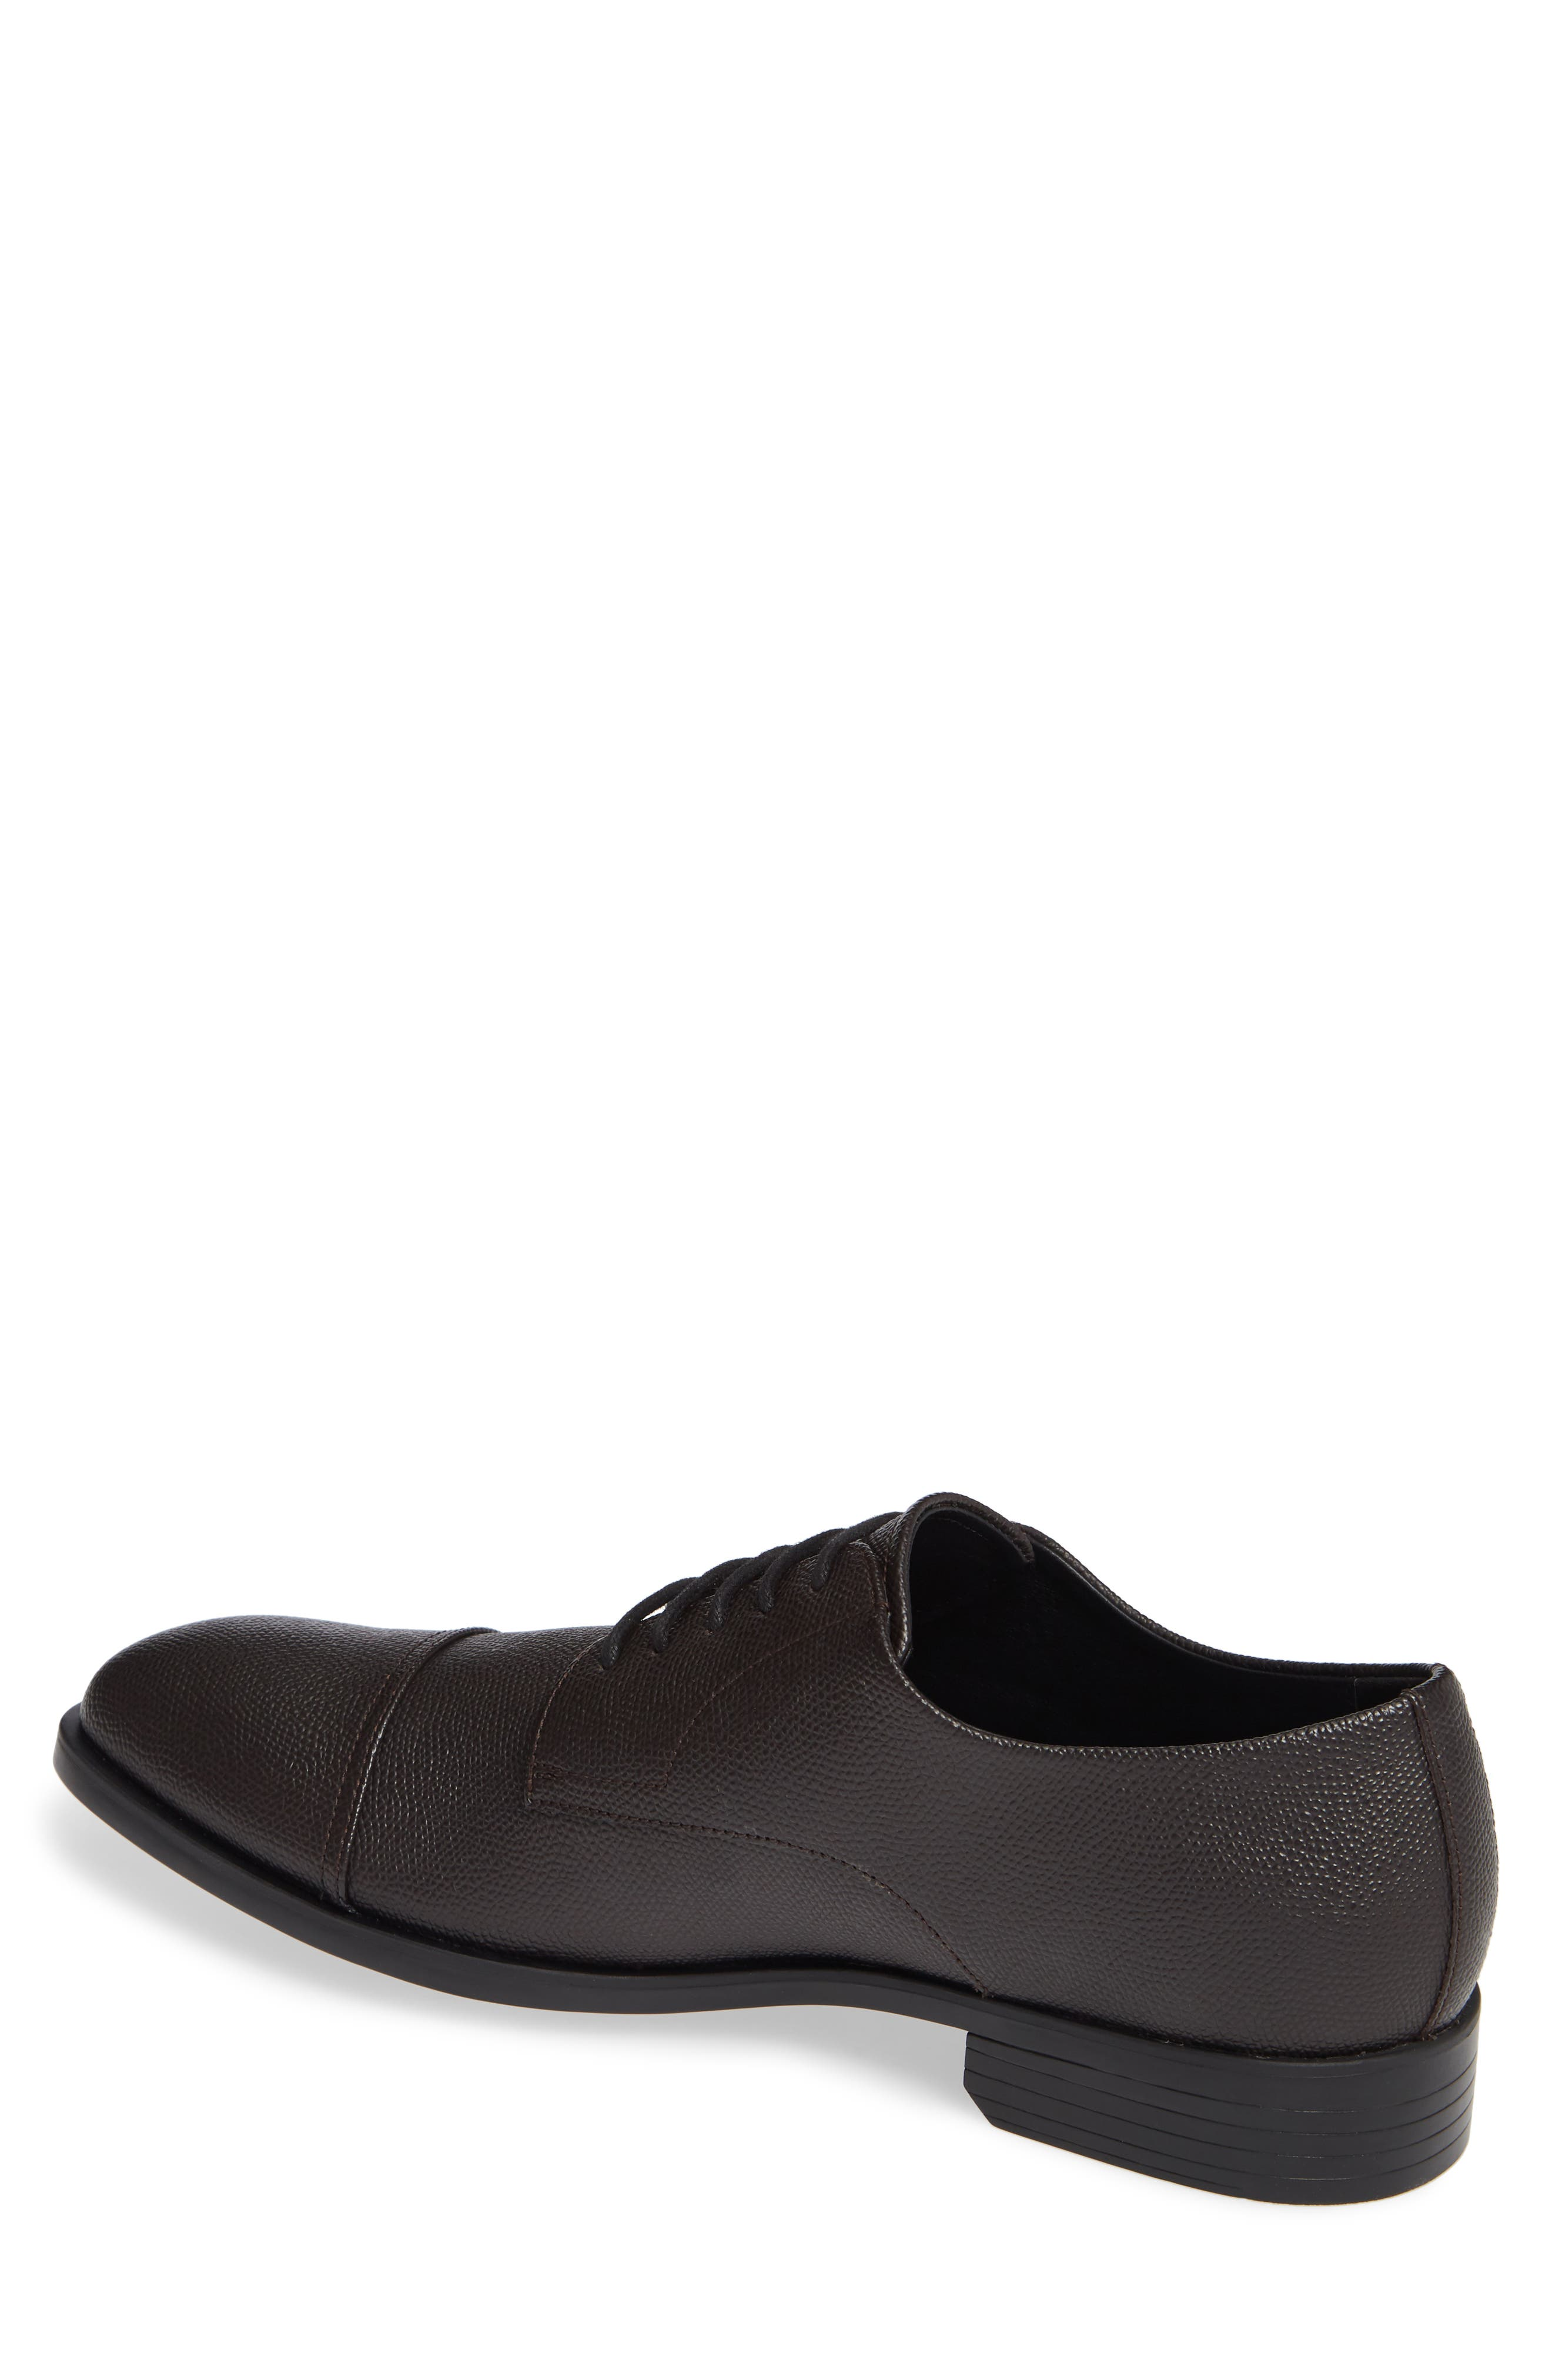 Connor Cap Toe Derby,                             Alternate thumbnail 2, color,                             DARK BROWN LEATHER